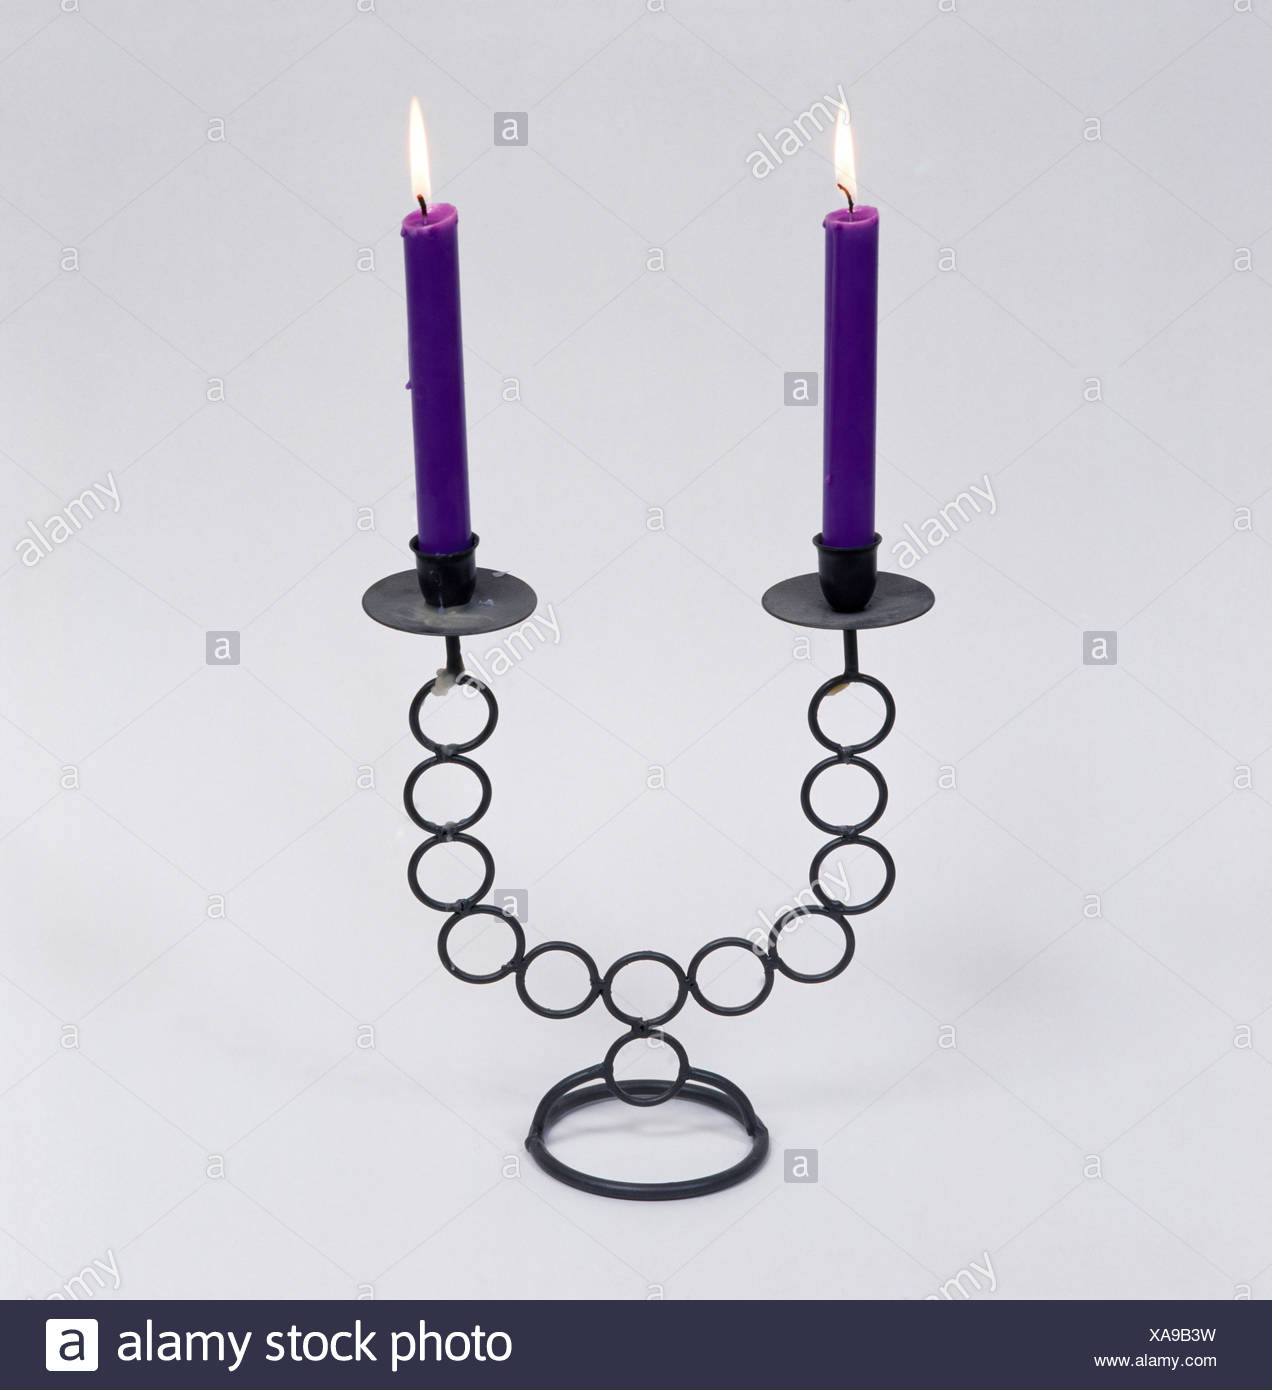 Close-up of purple candles in a metal candlestick - Stock Image